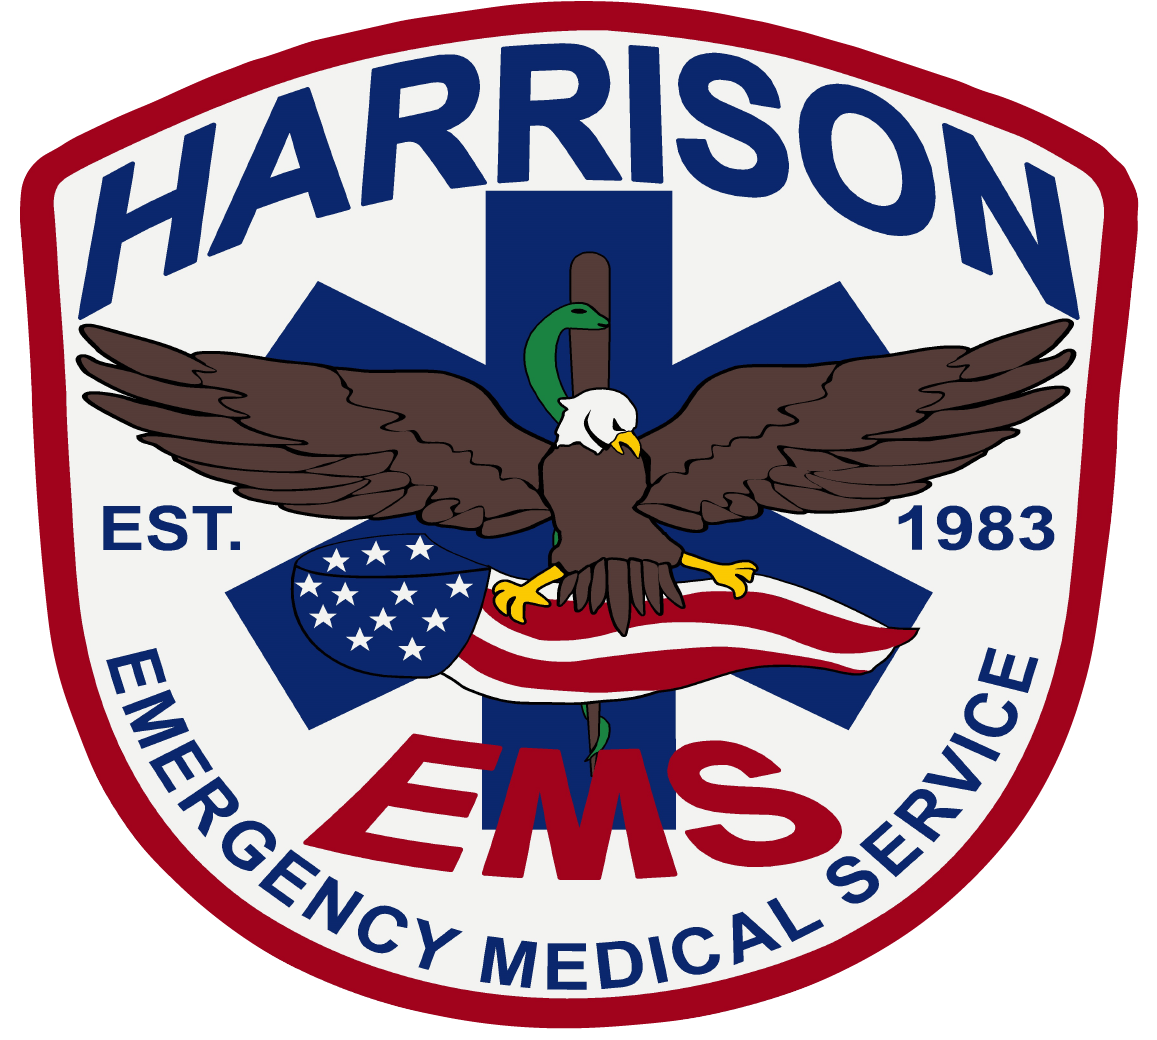 Harrison patch logo